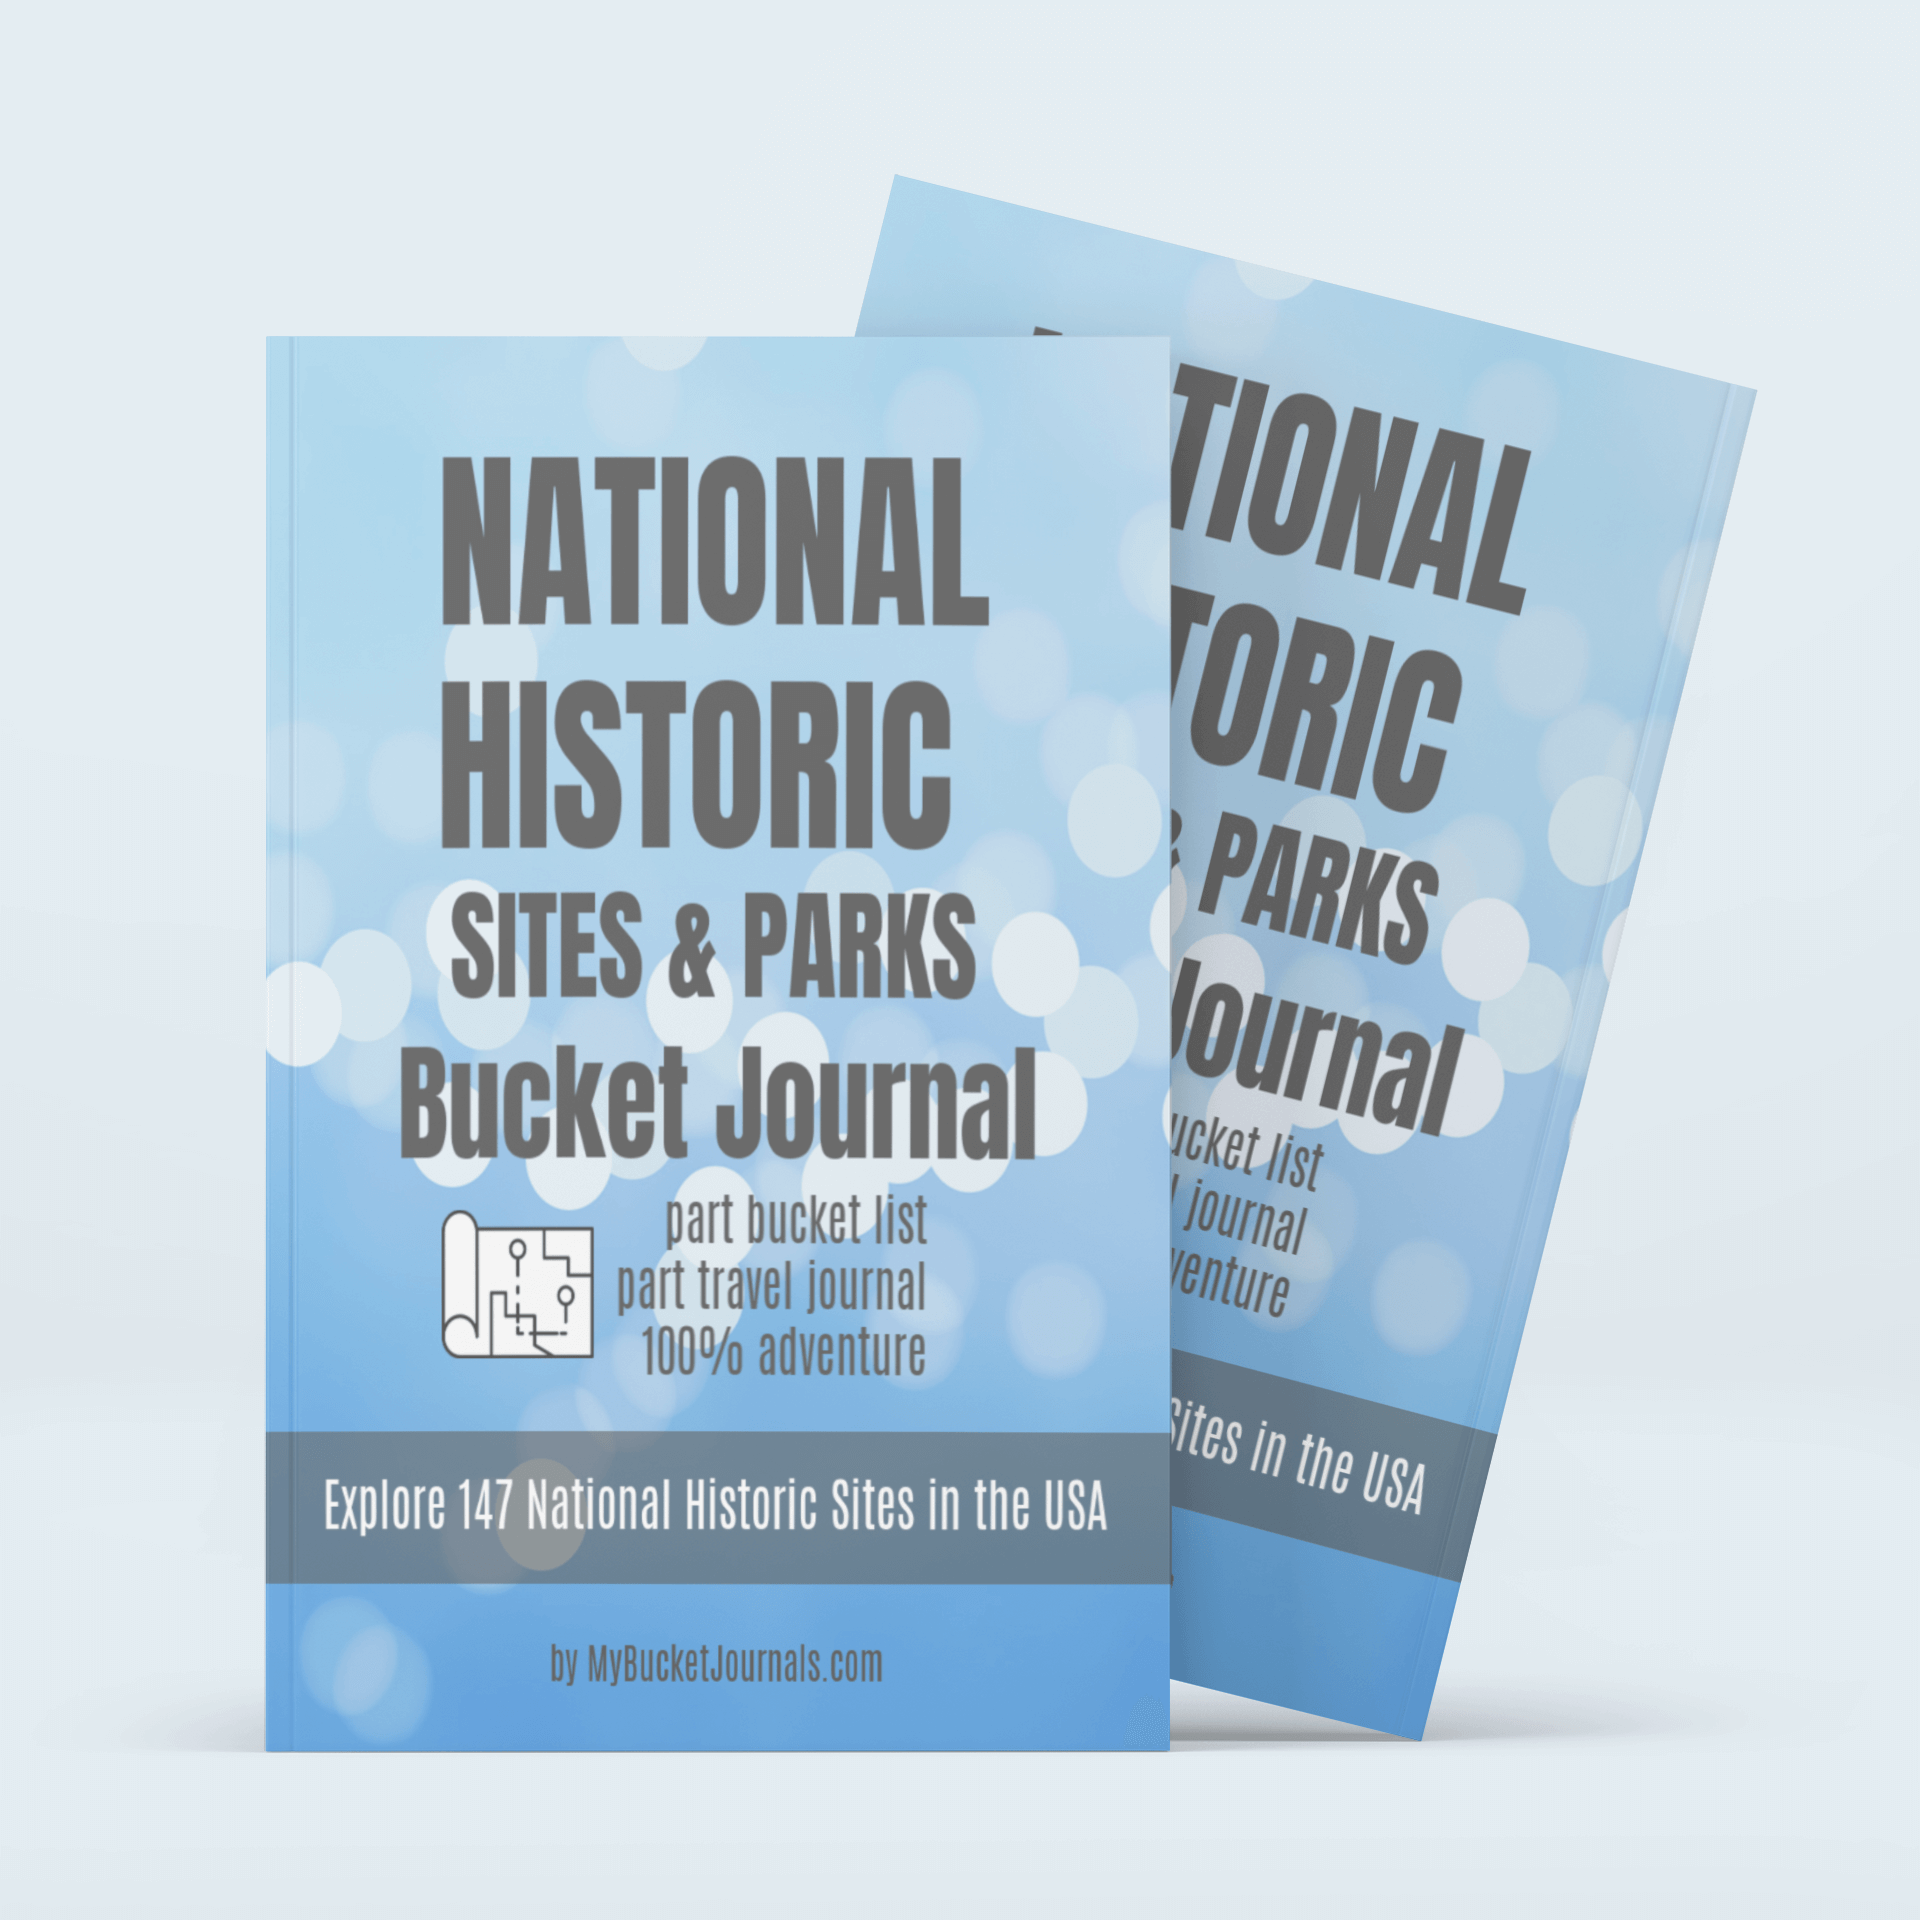 National Historic Sites & Parks Bucket Journal - Paperback